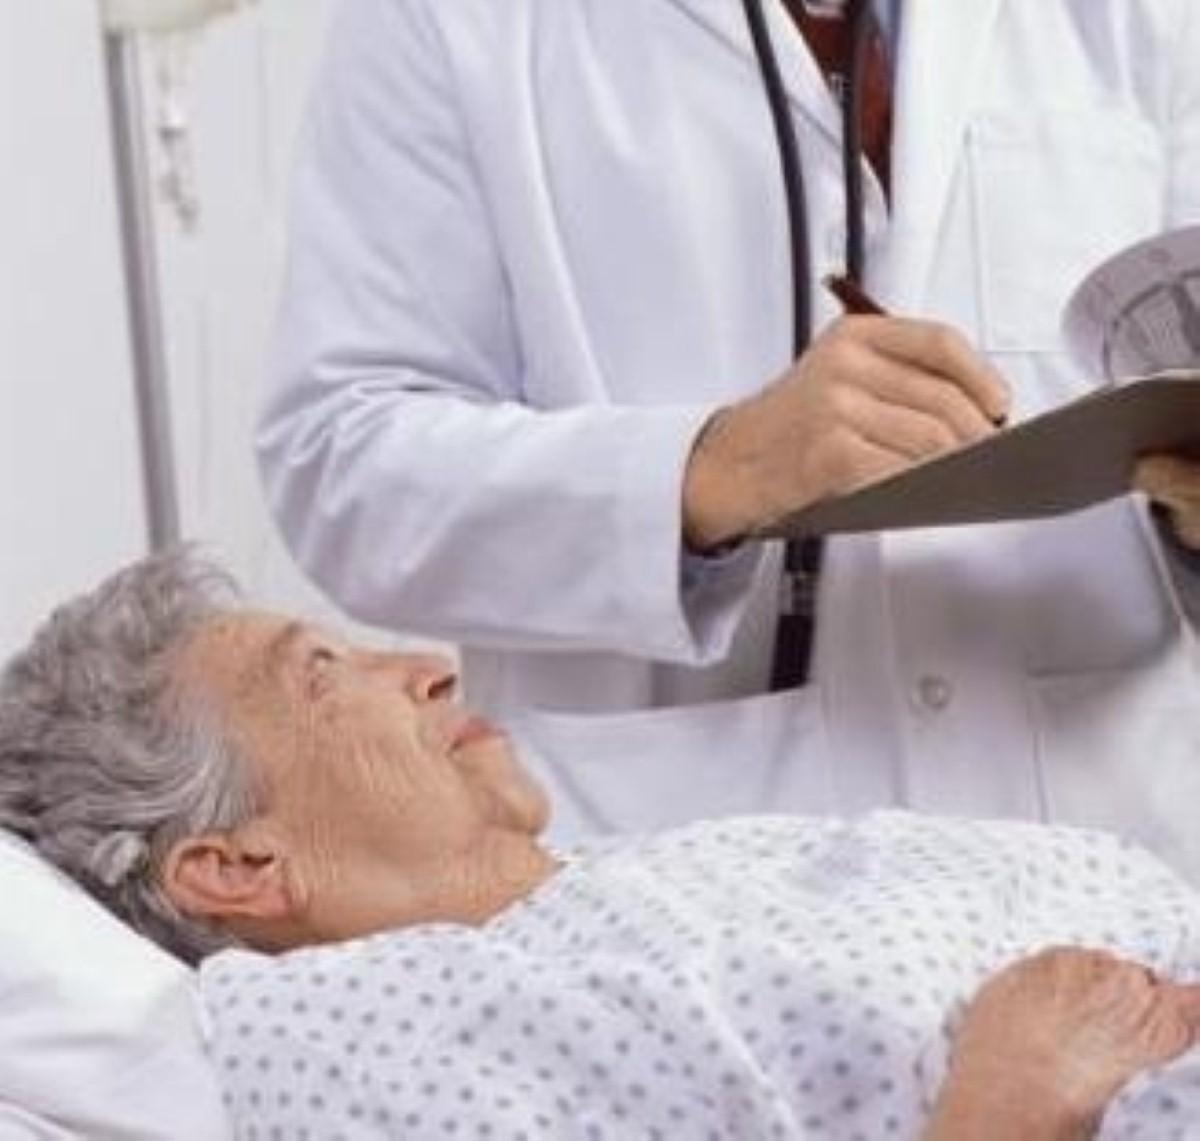 Older people 'not getting the care they deserve'